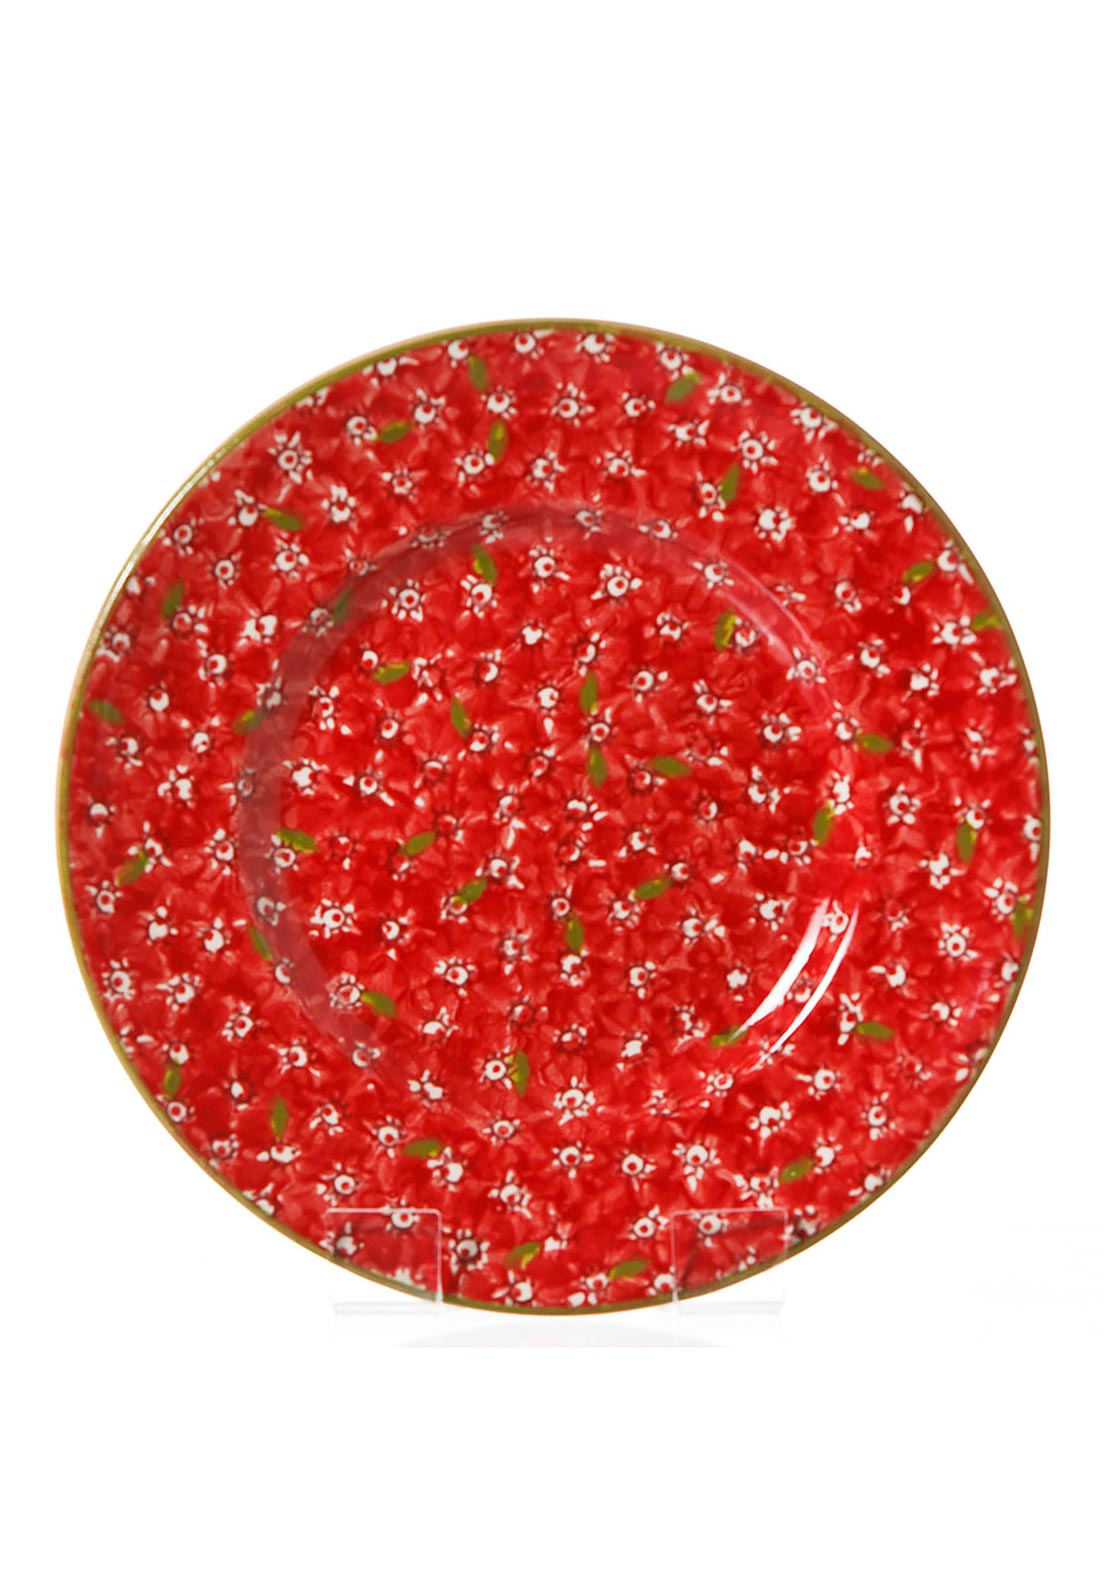 Nicholas Mosse Pottery Red Lawn Lunch Plate